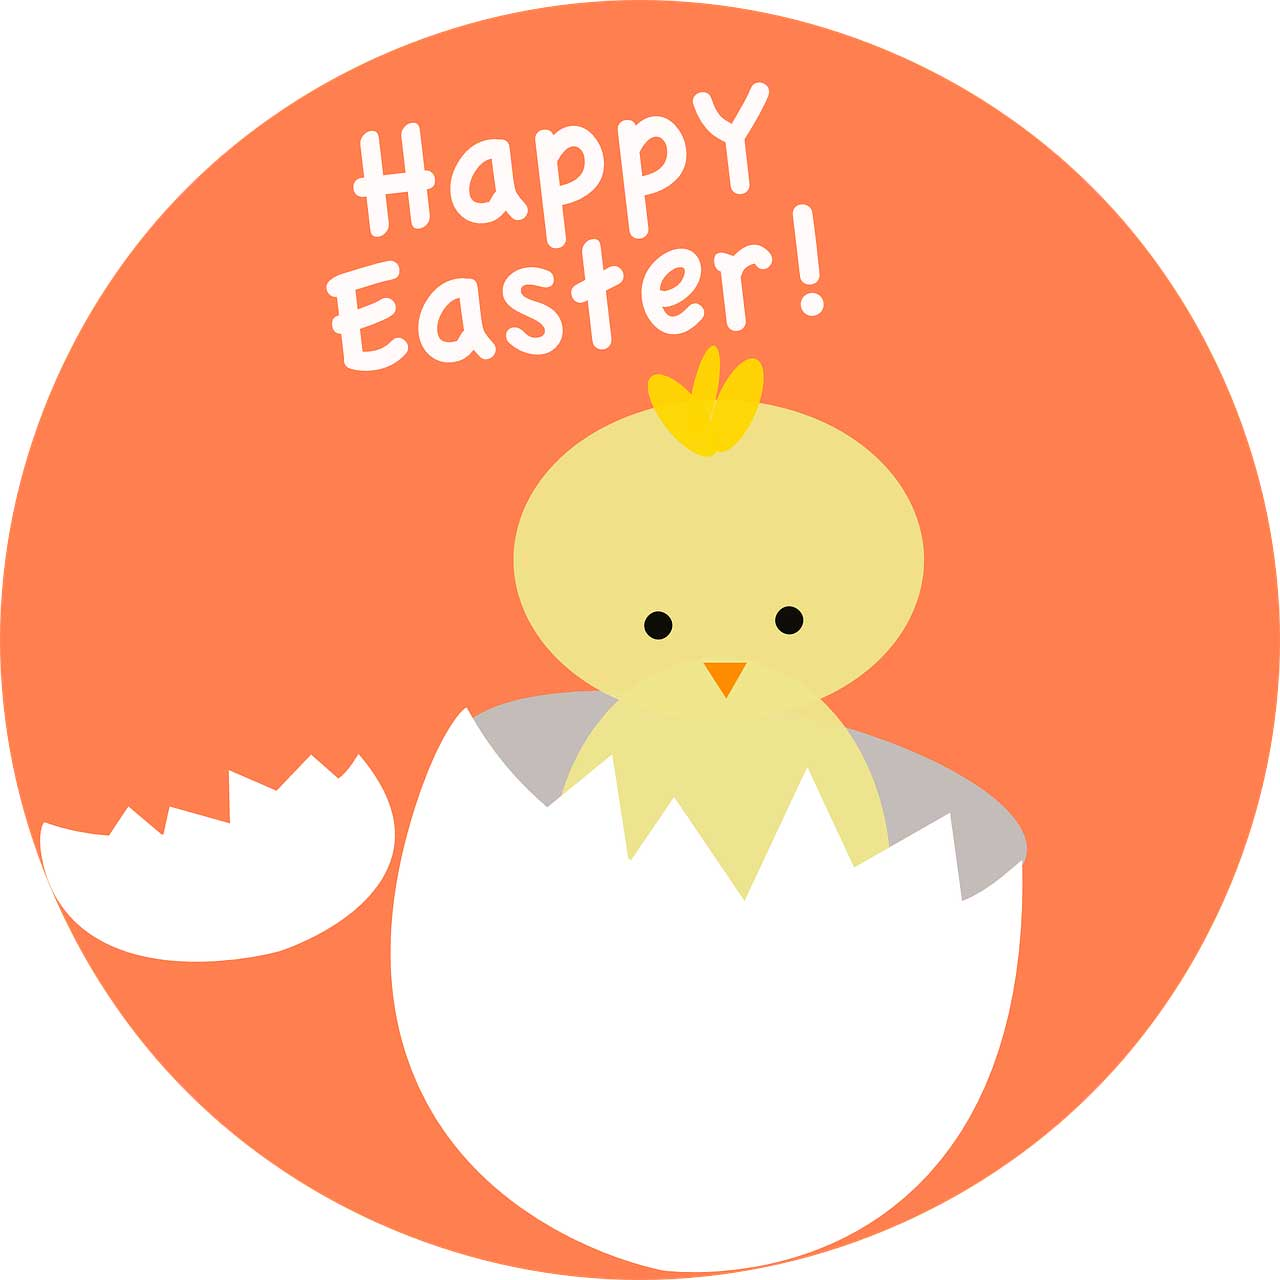 Happy Easter chick image at Send Flowers